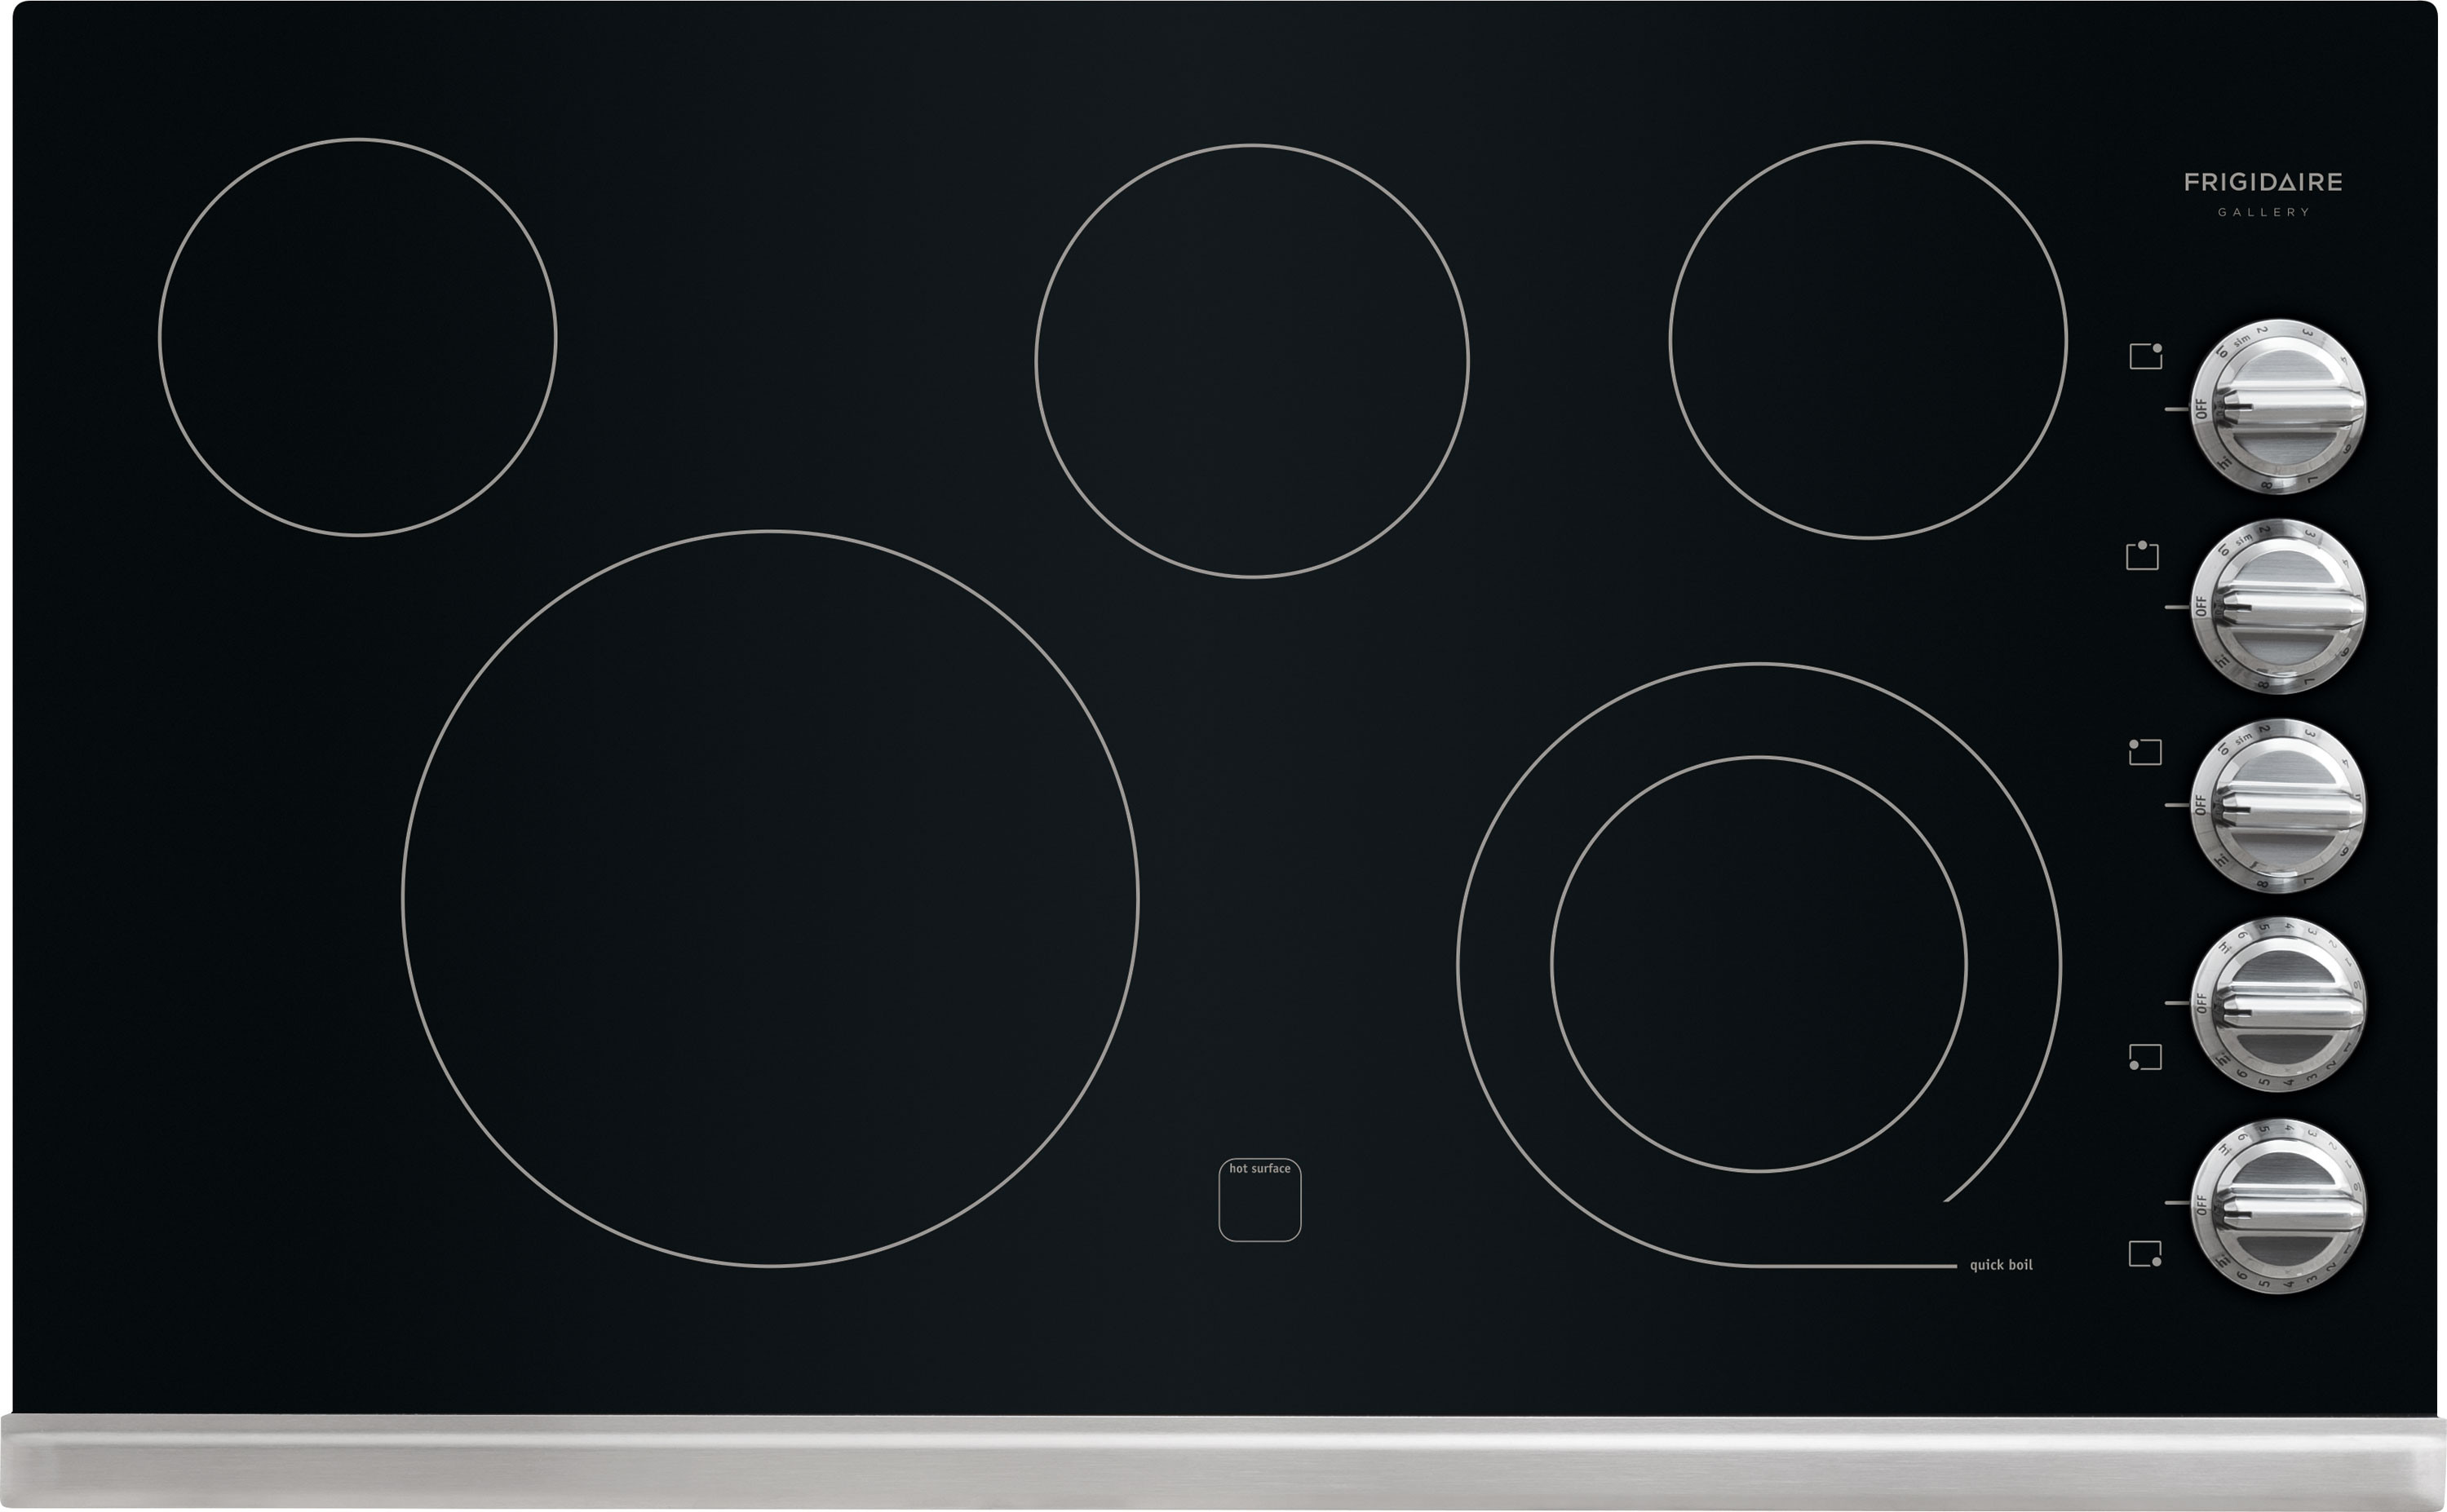 Frigidaire FGEC3645PS 36 Inch Smoothtop Electric Cooktop with 5 Heating  Zones, SpaceWise Expandable 6 Inch/9 Inch Heating Zone, Ceramic Glass  Construction, ...